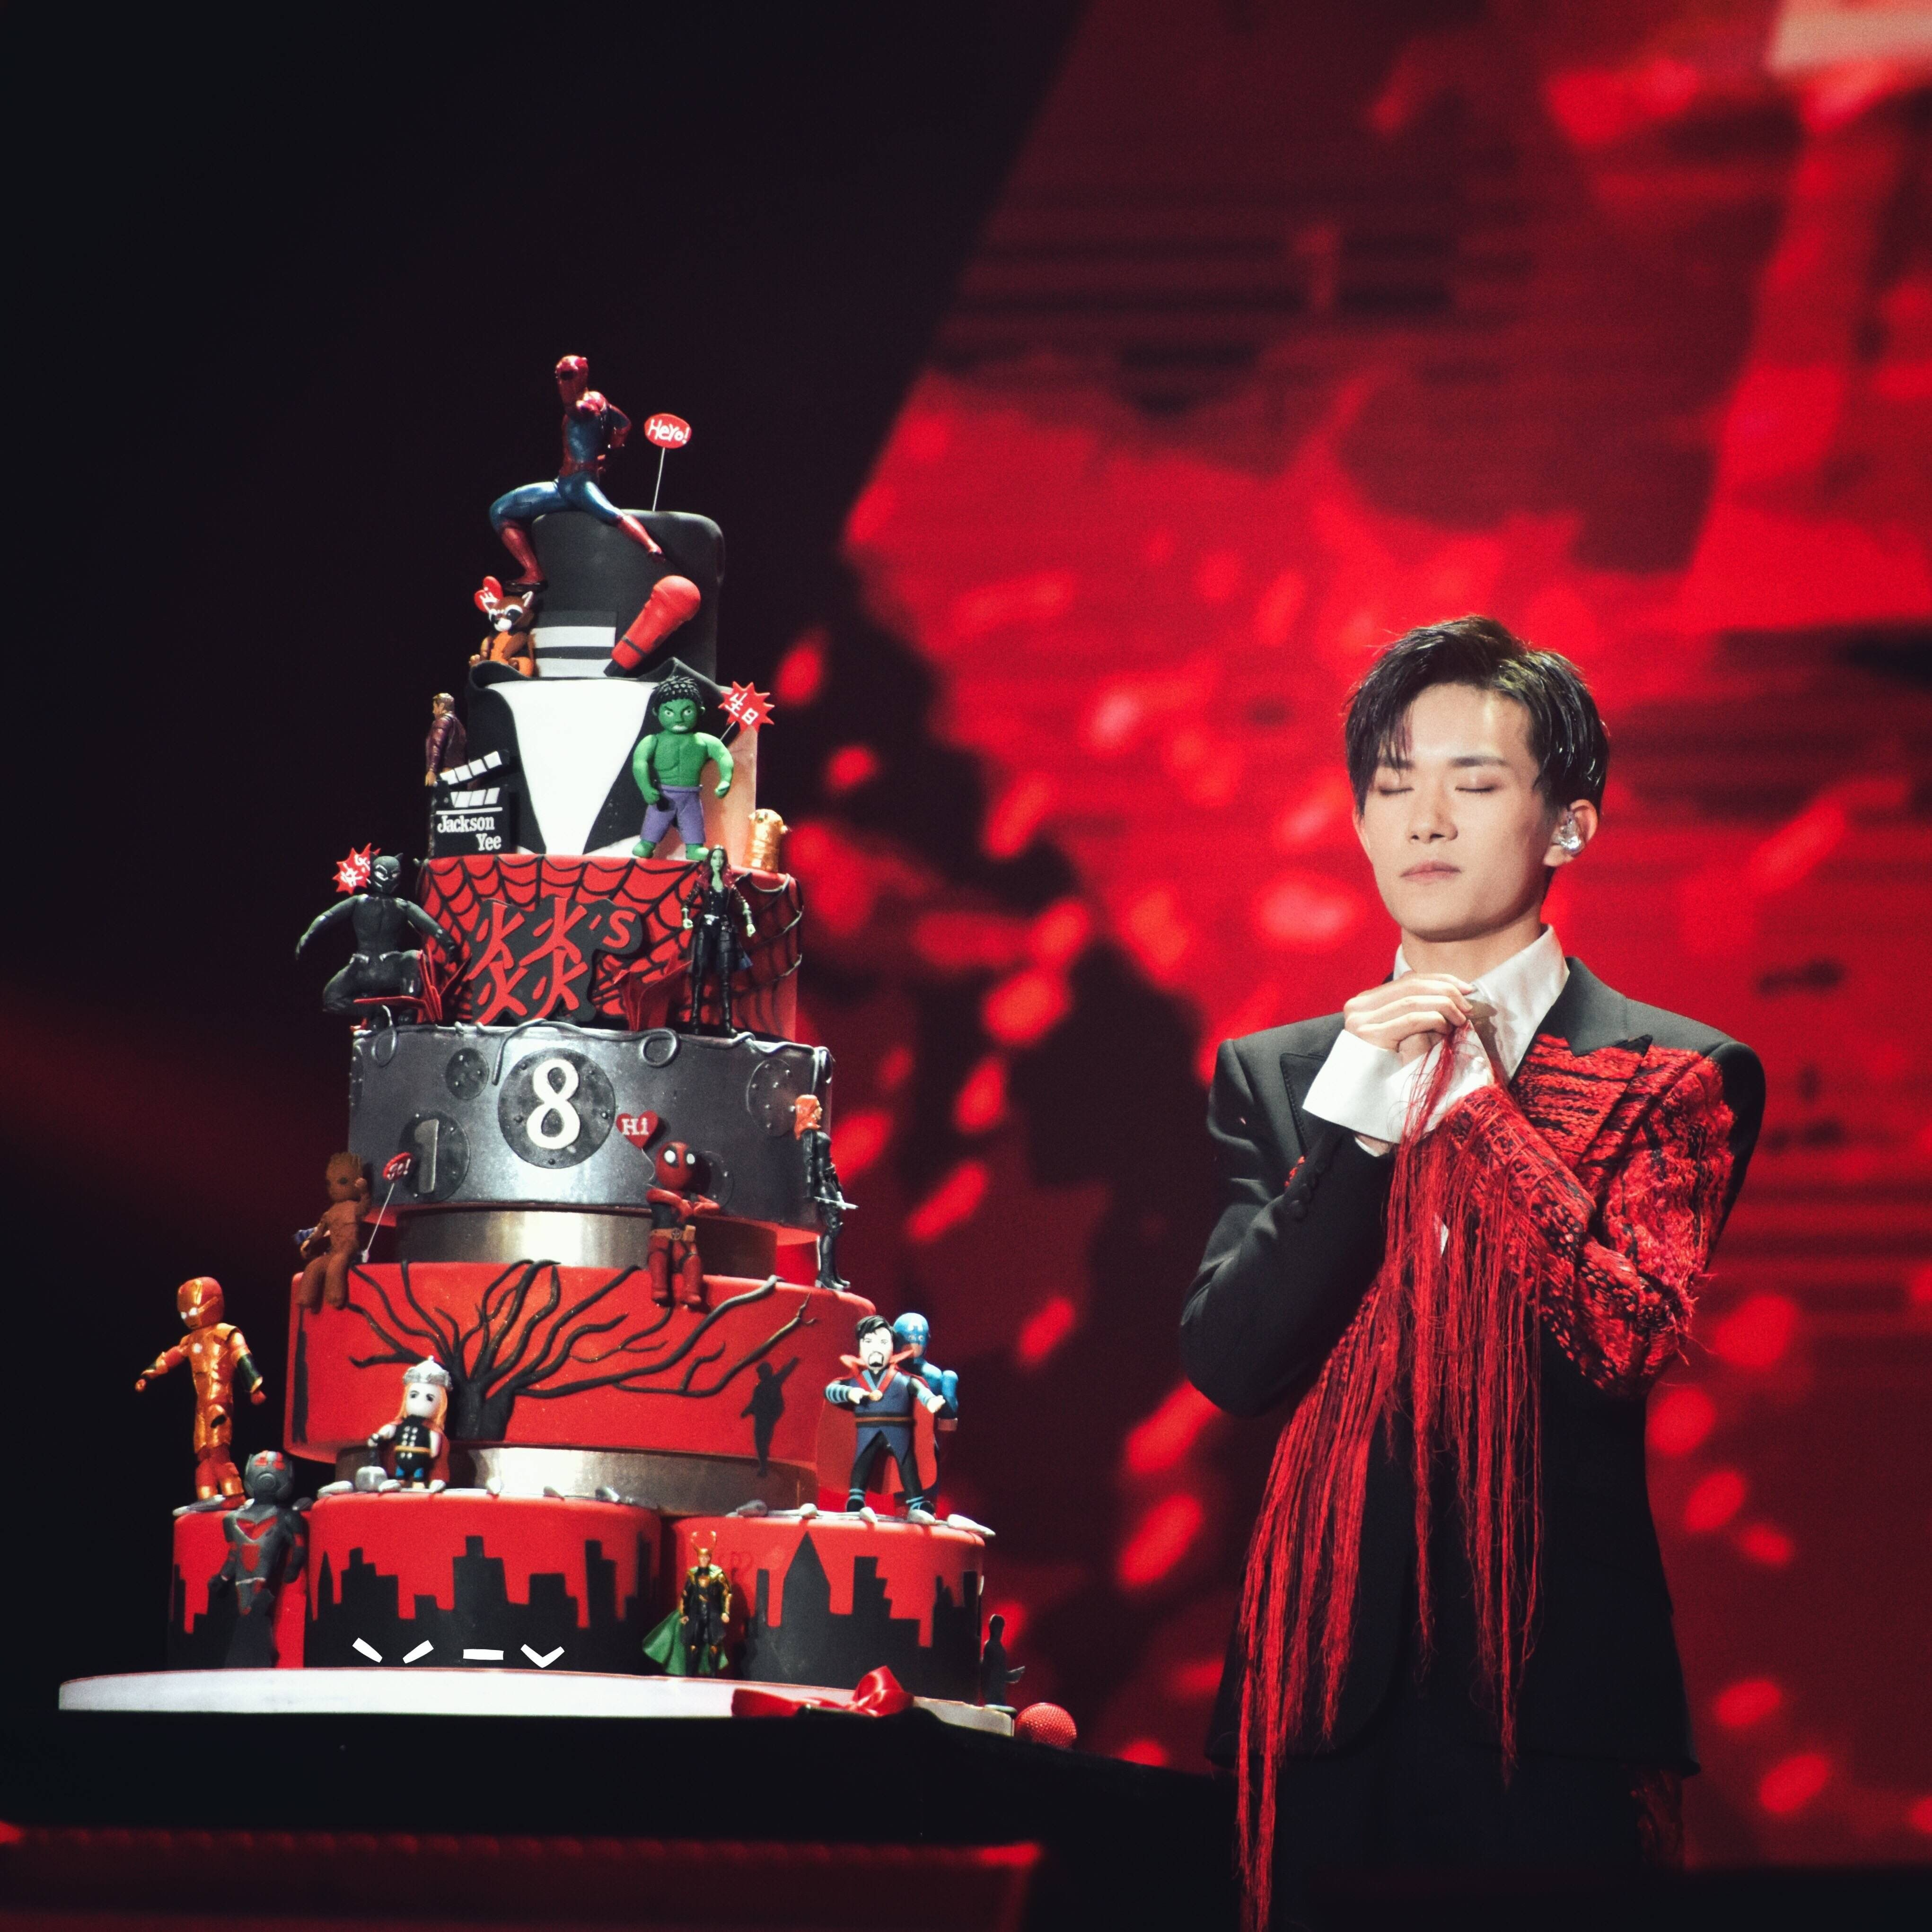 Ghim trên Jackson's Birthday 18th《燚's》Adult Ceremony